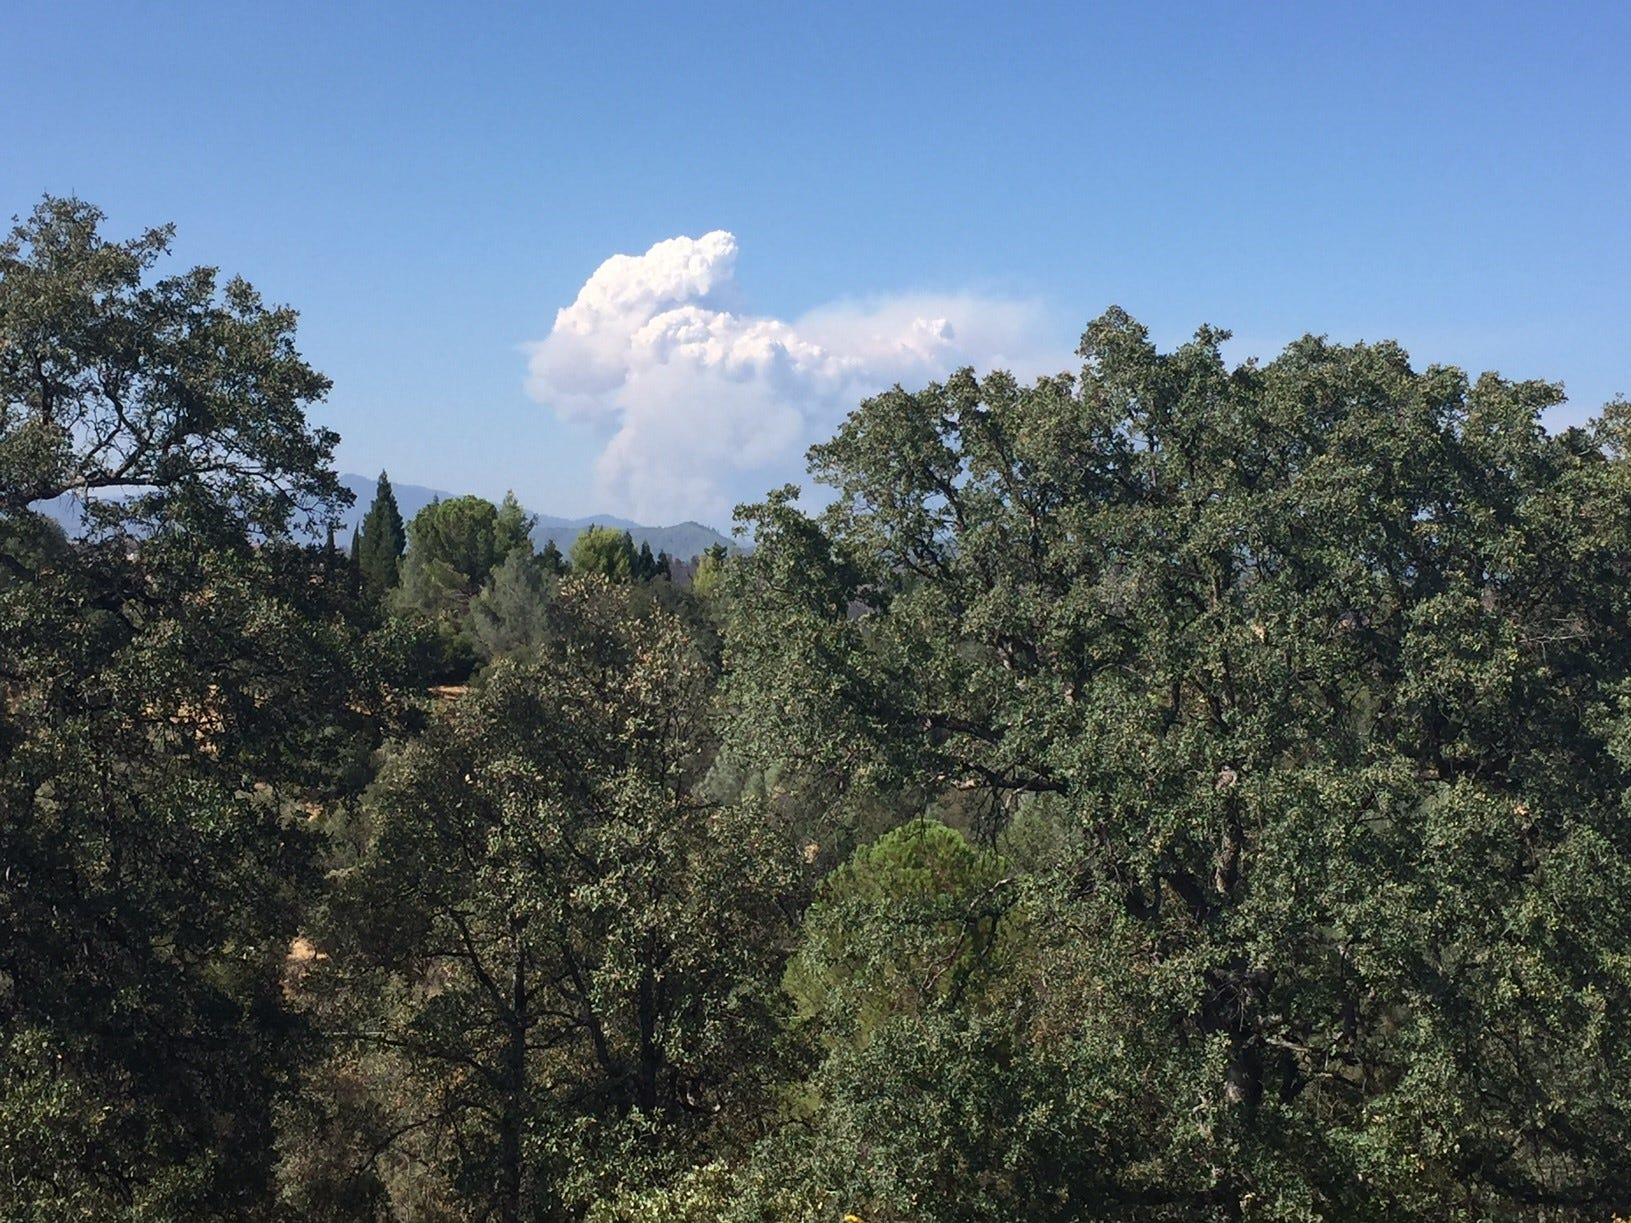 The Delta Fire as seen from west Redding Wednesday, September 5, 2018.